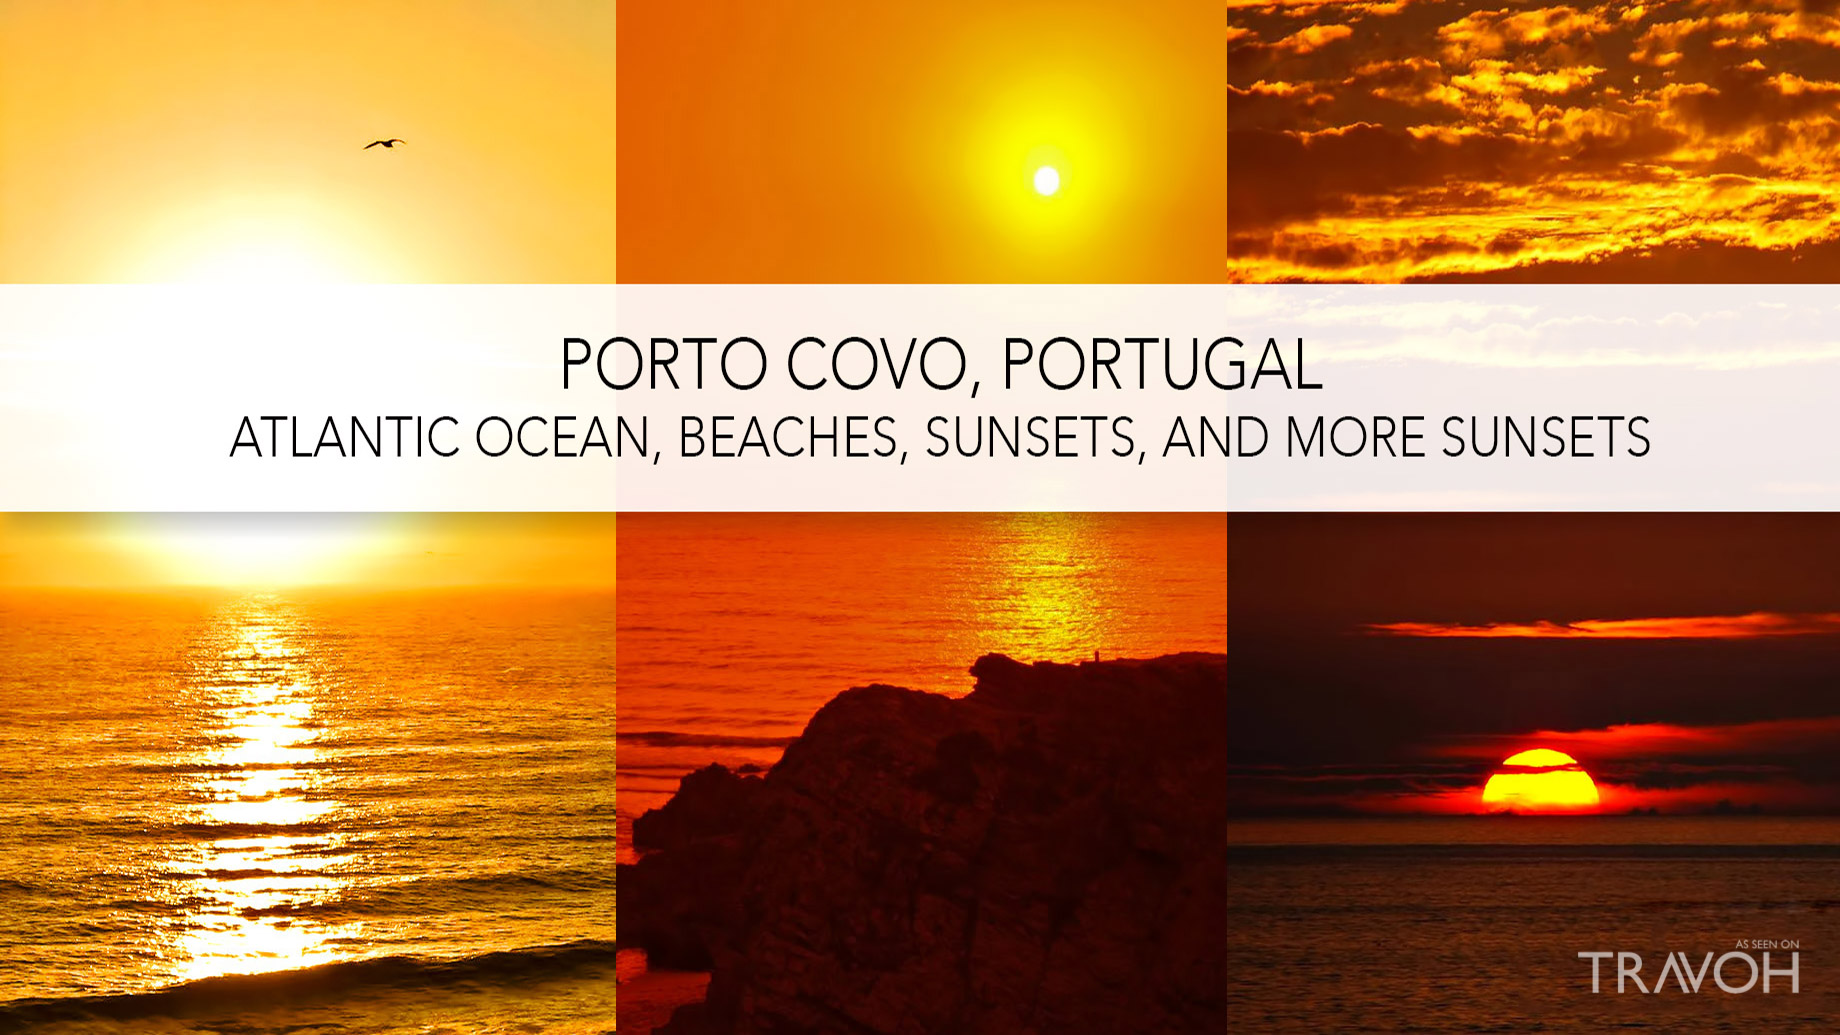 Porto Covo, Portugal - Atlantic Ocean, Beaches, Sunsets, and More Sunsets